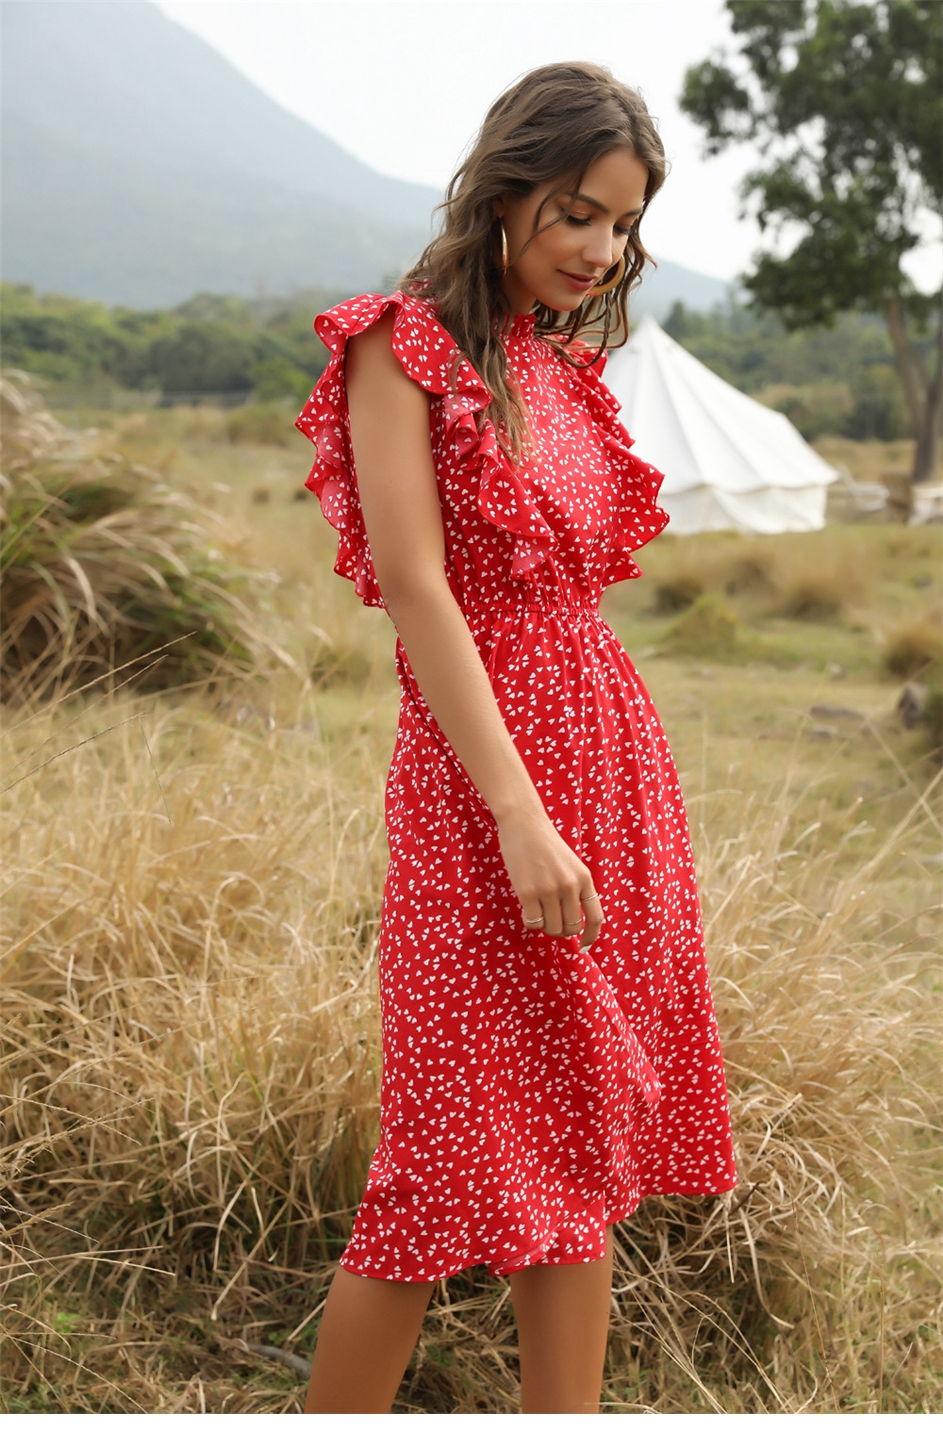 The elegant side view of Women's Casual Butterfly Sleeve Ruffles Chiffon Summer Dress